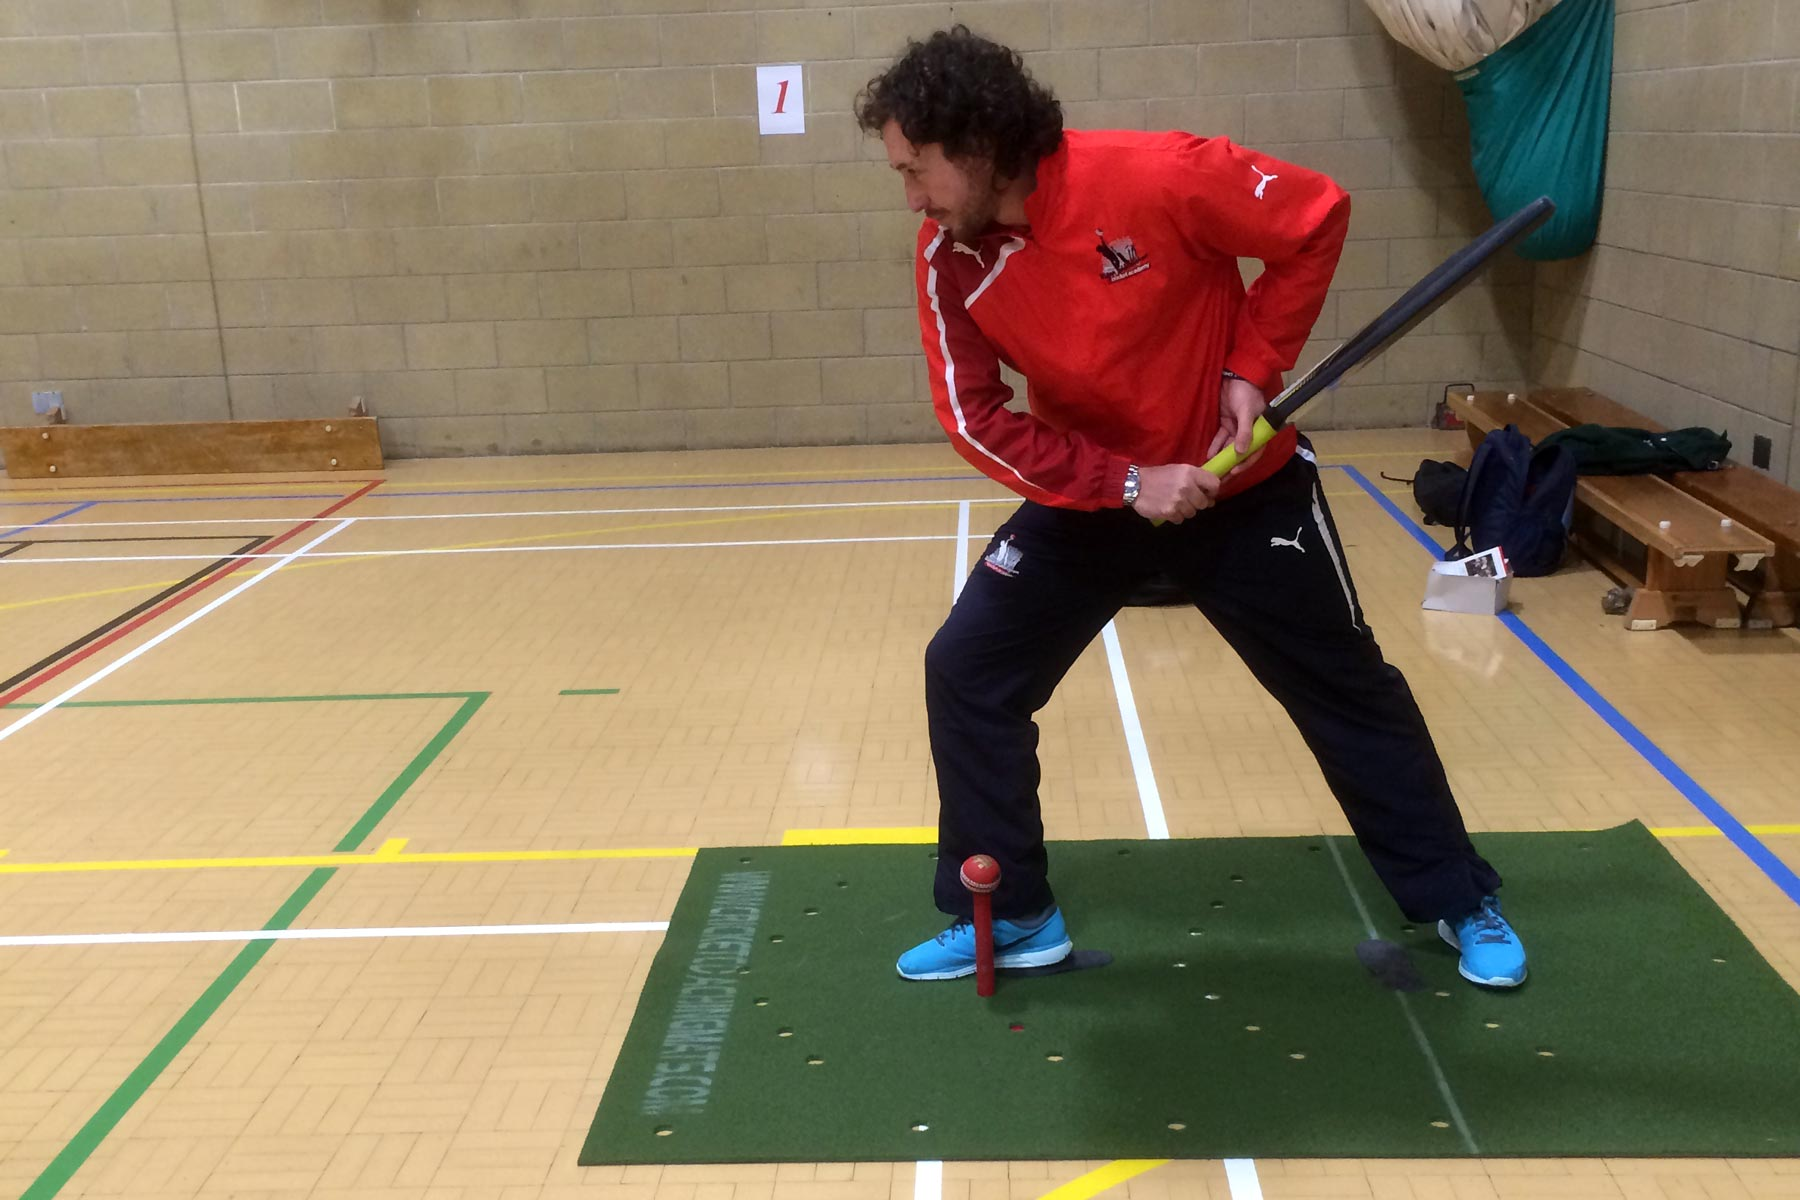 Cricket coaches love Club-practice with cricket Training mat to improve coordination and technique